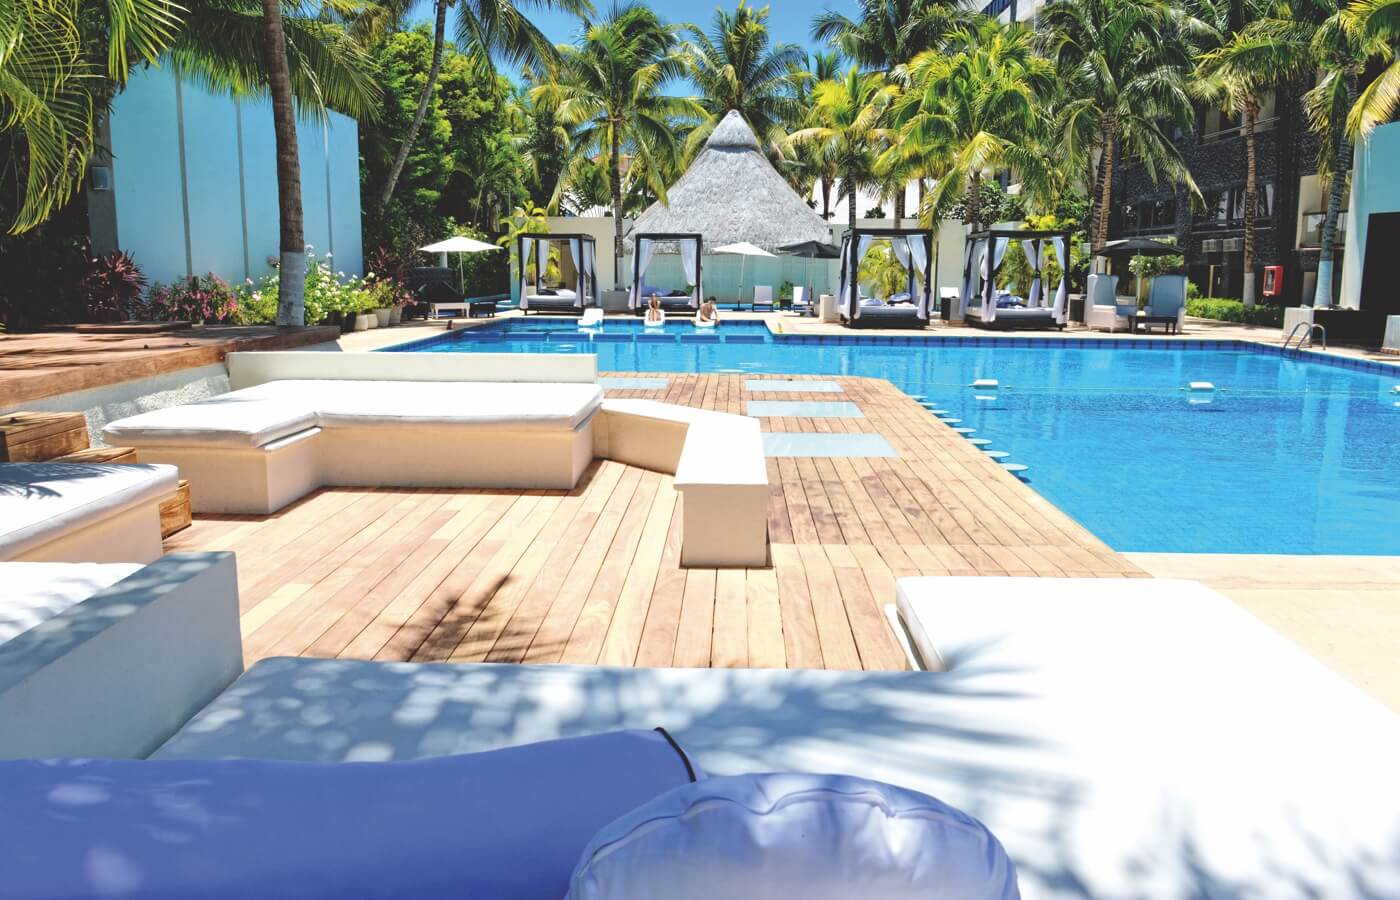 Swimming Pool Area in Hotel Oh! Cancun The Urban Oasis